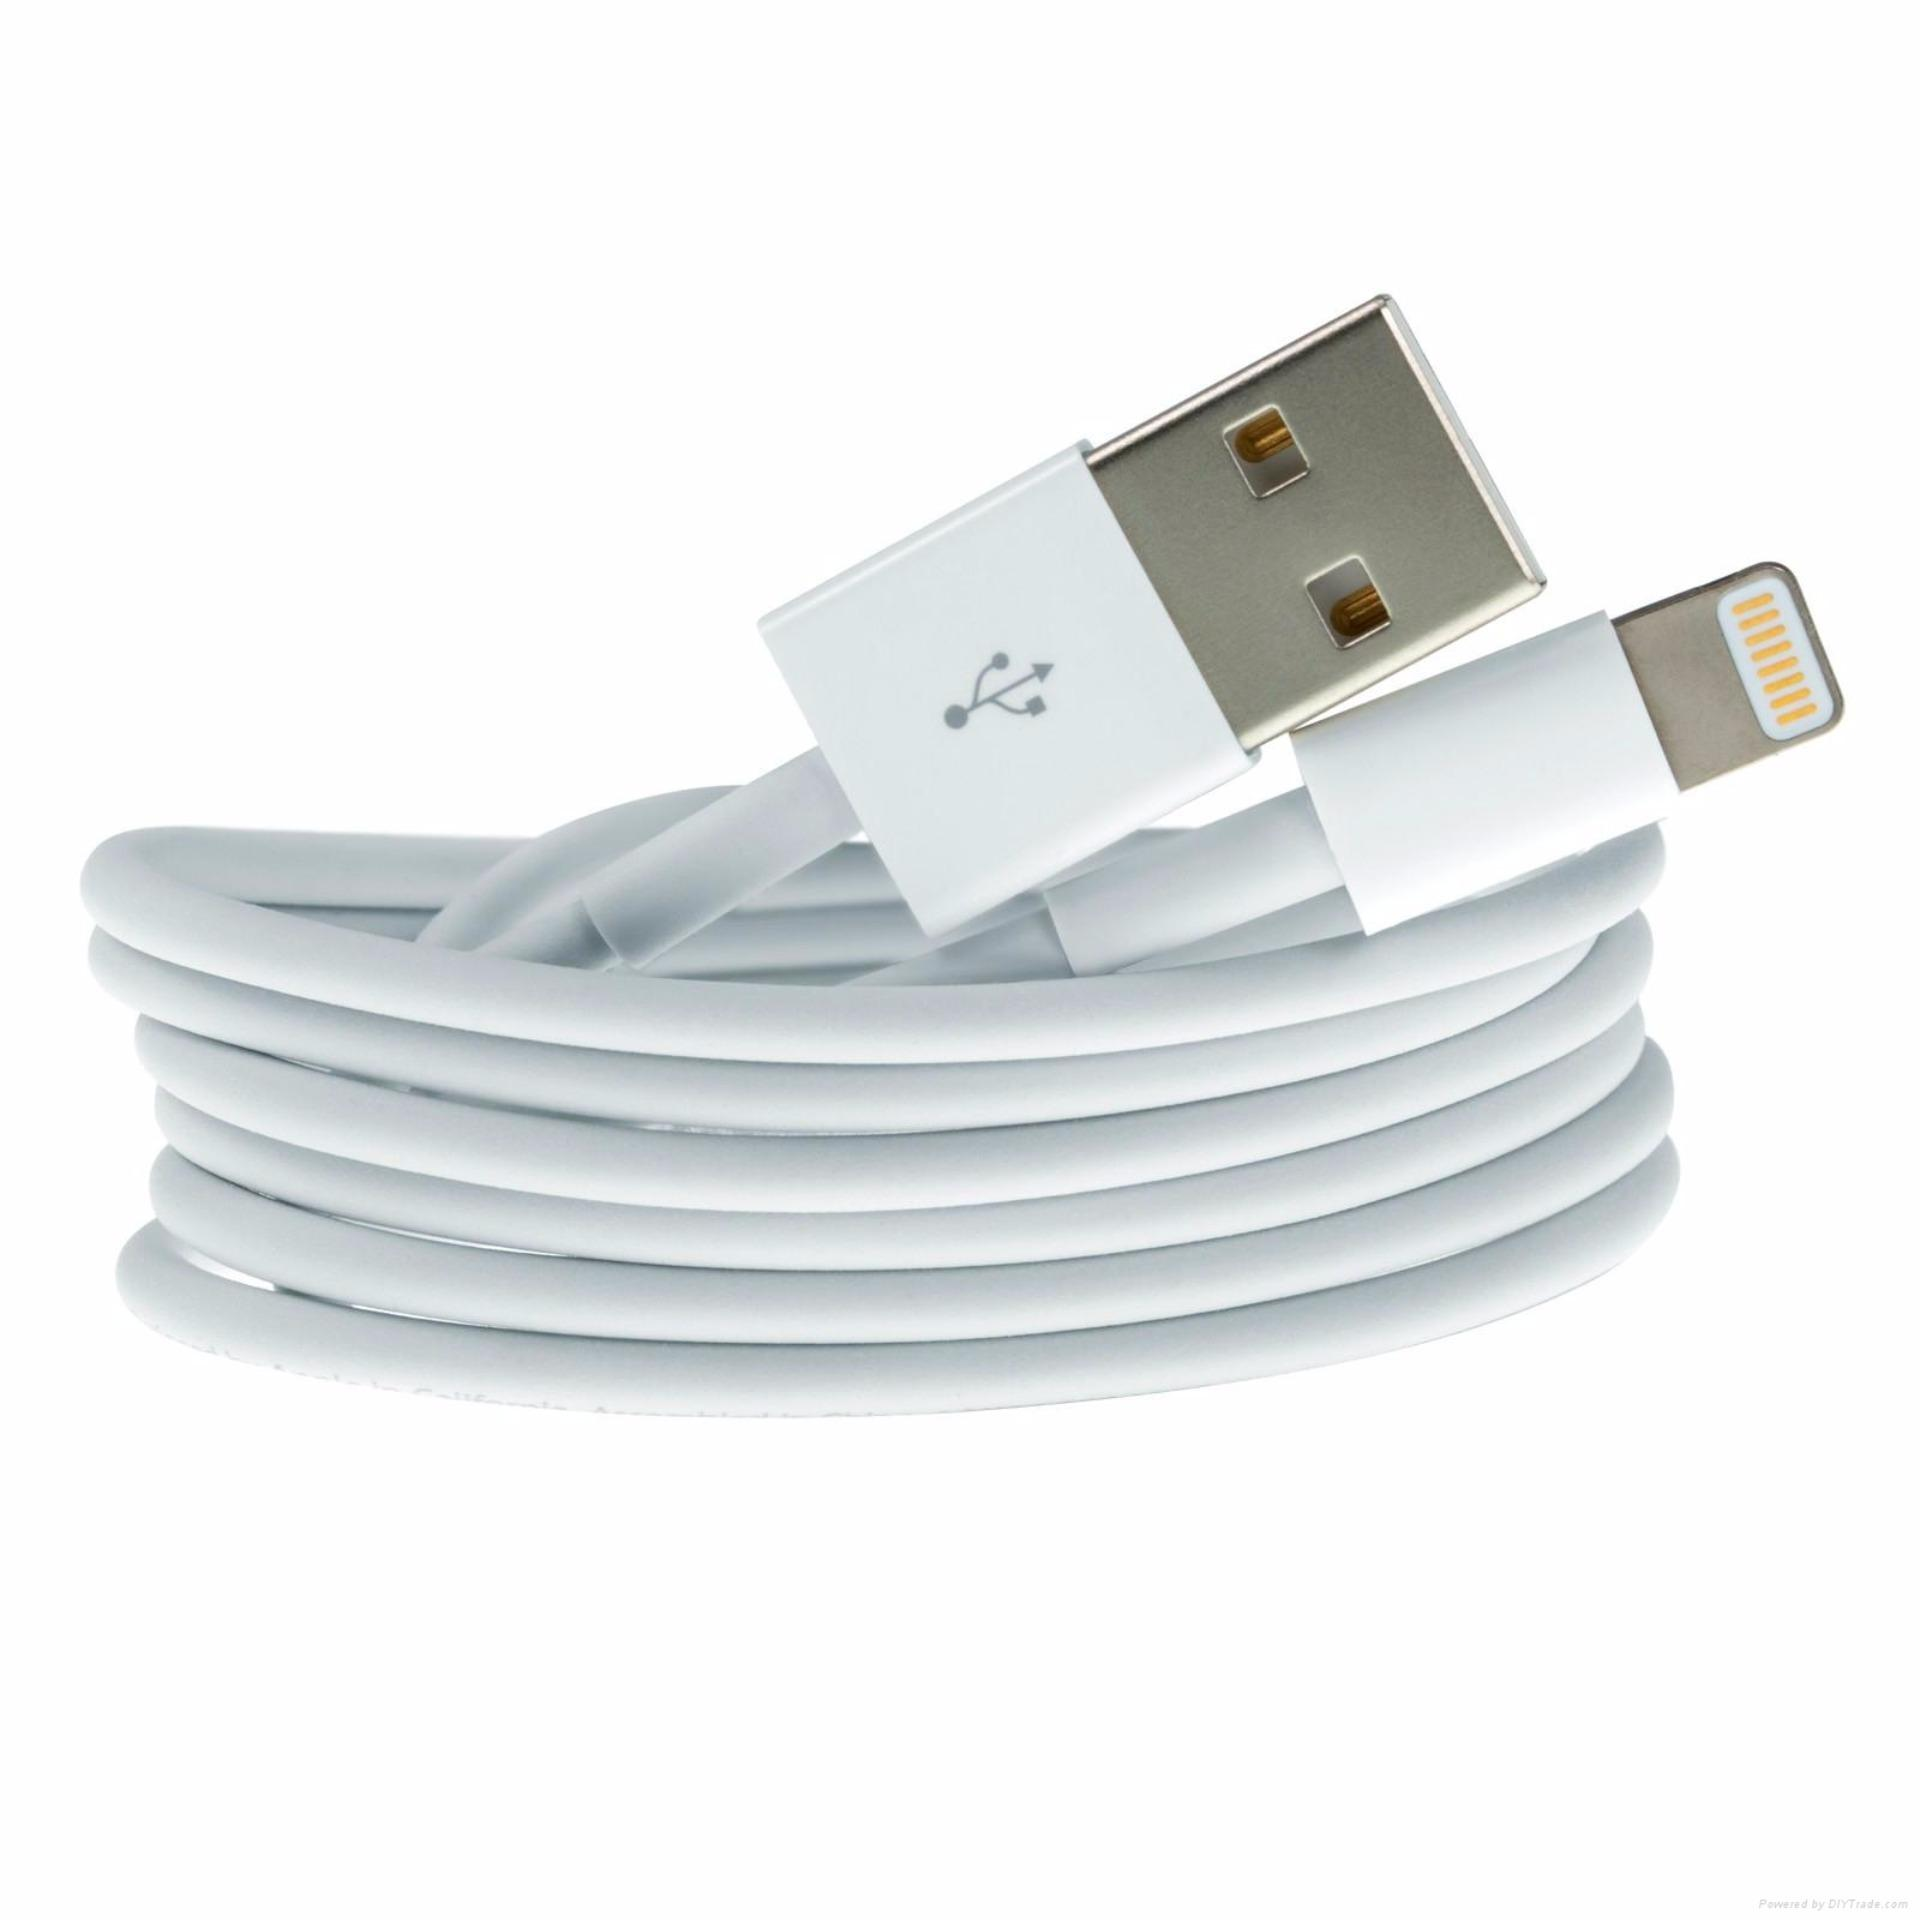 Apple Lighting To Usb Cable Kable Data Iphone 5 Original Promo Beli 1 Gratis 1